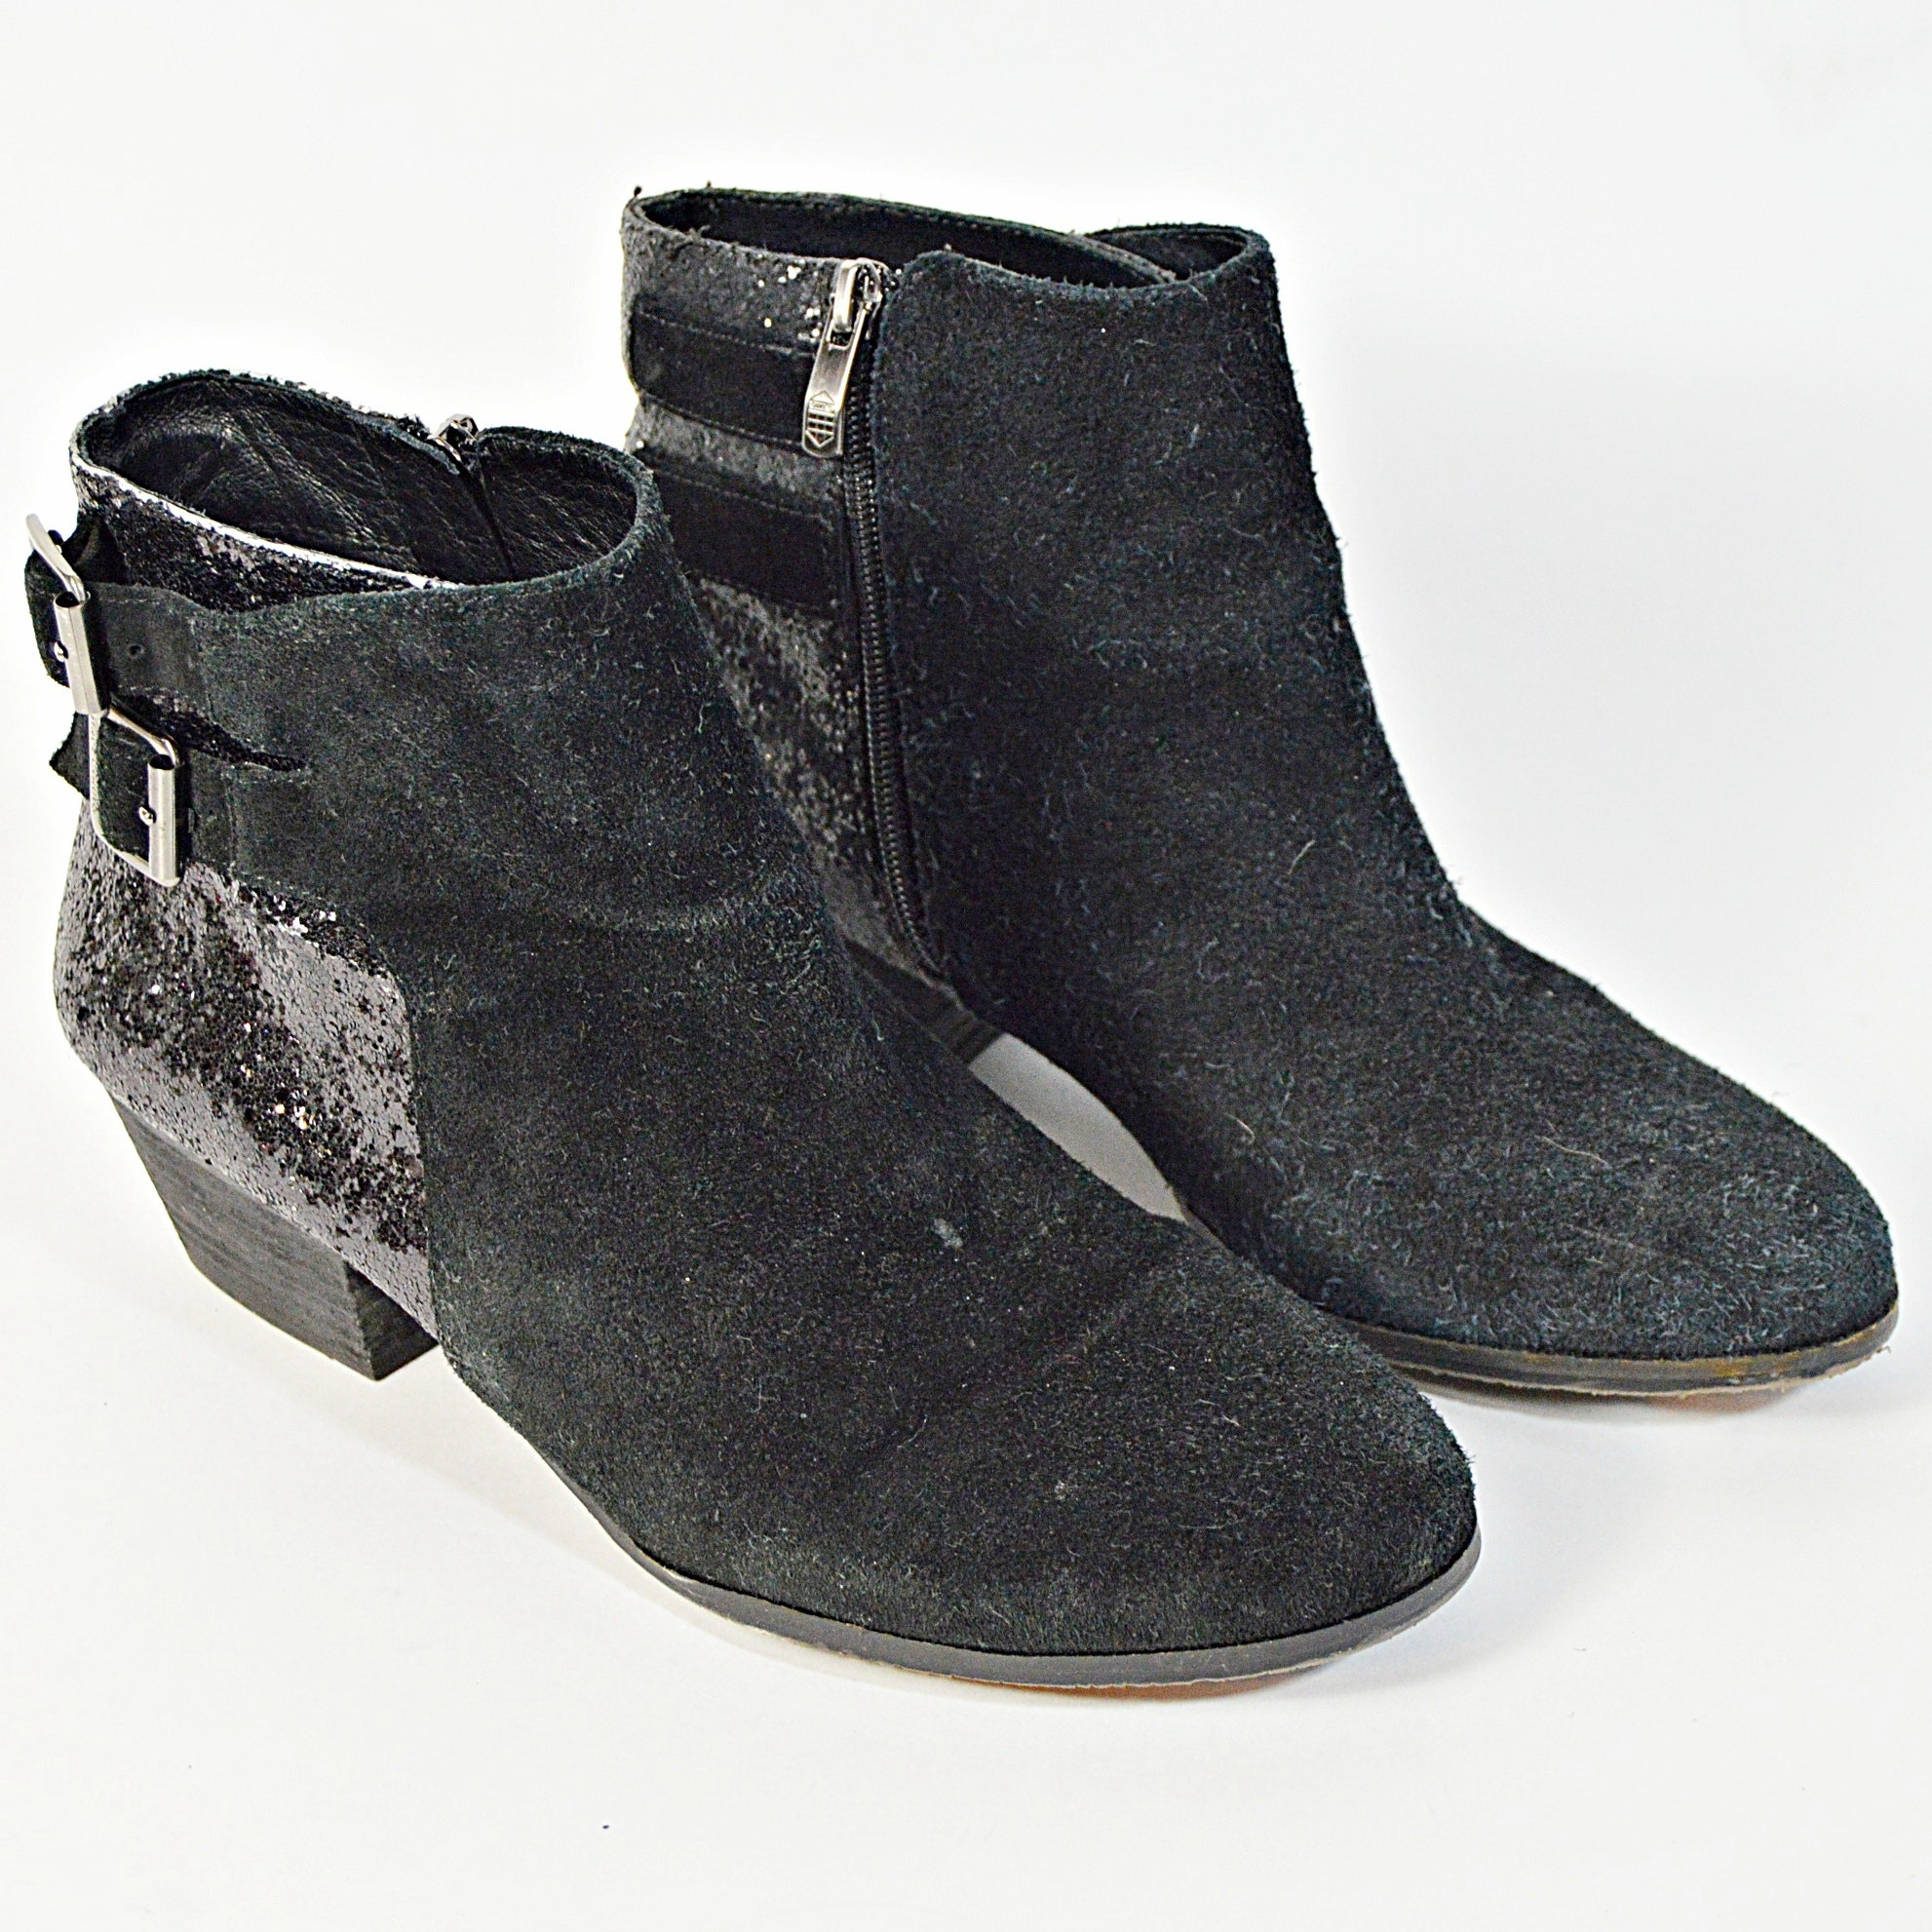 Vince Camuto Black Suede Boots, 10M